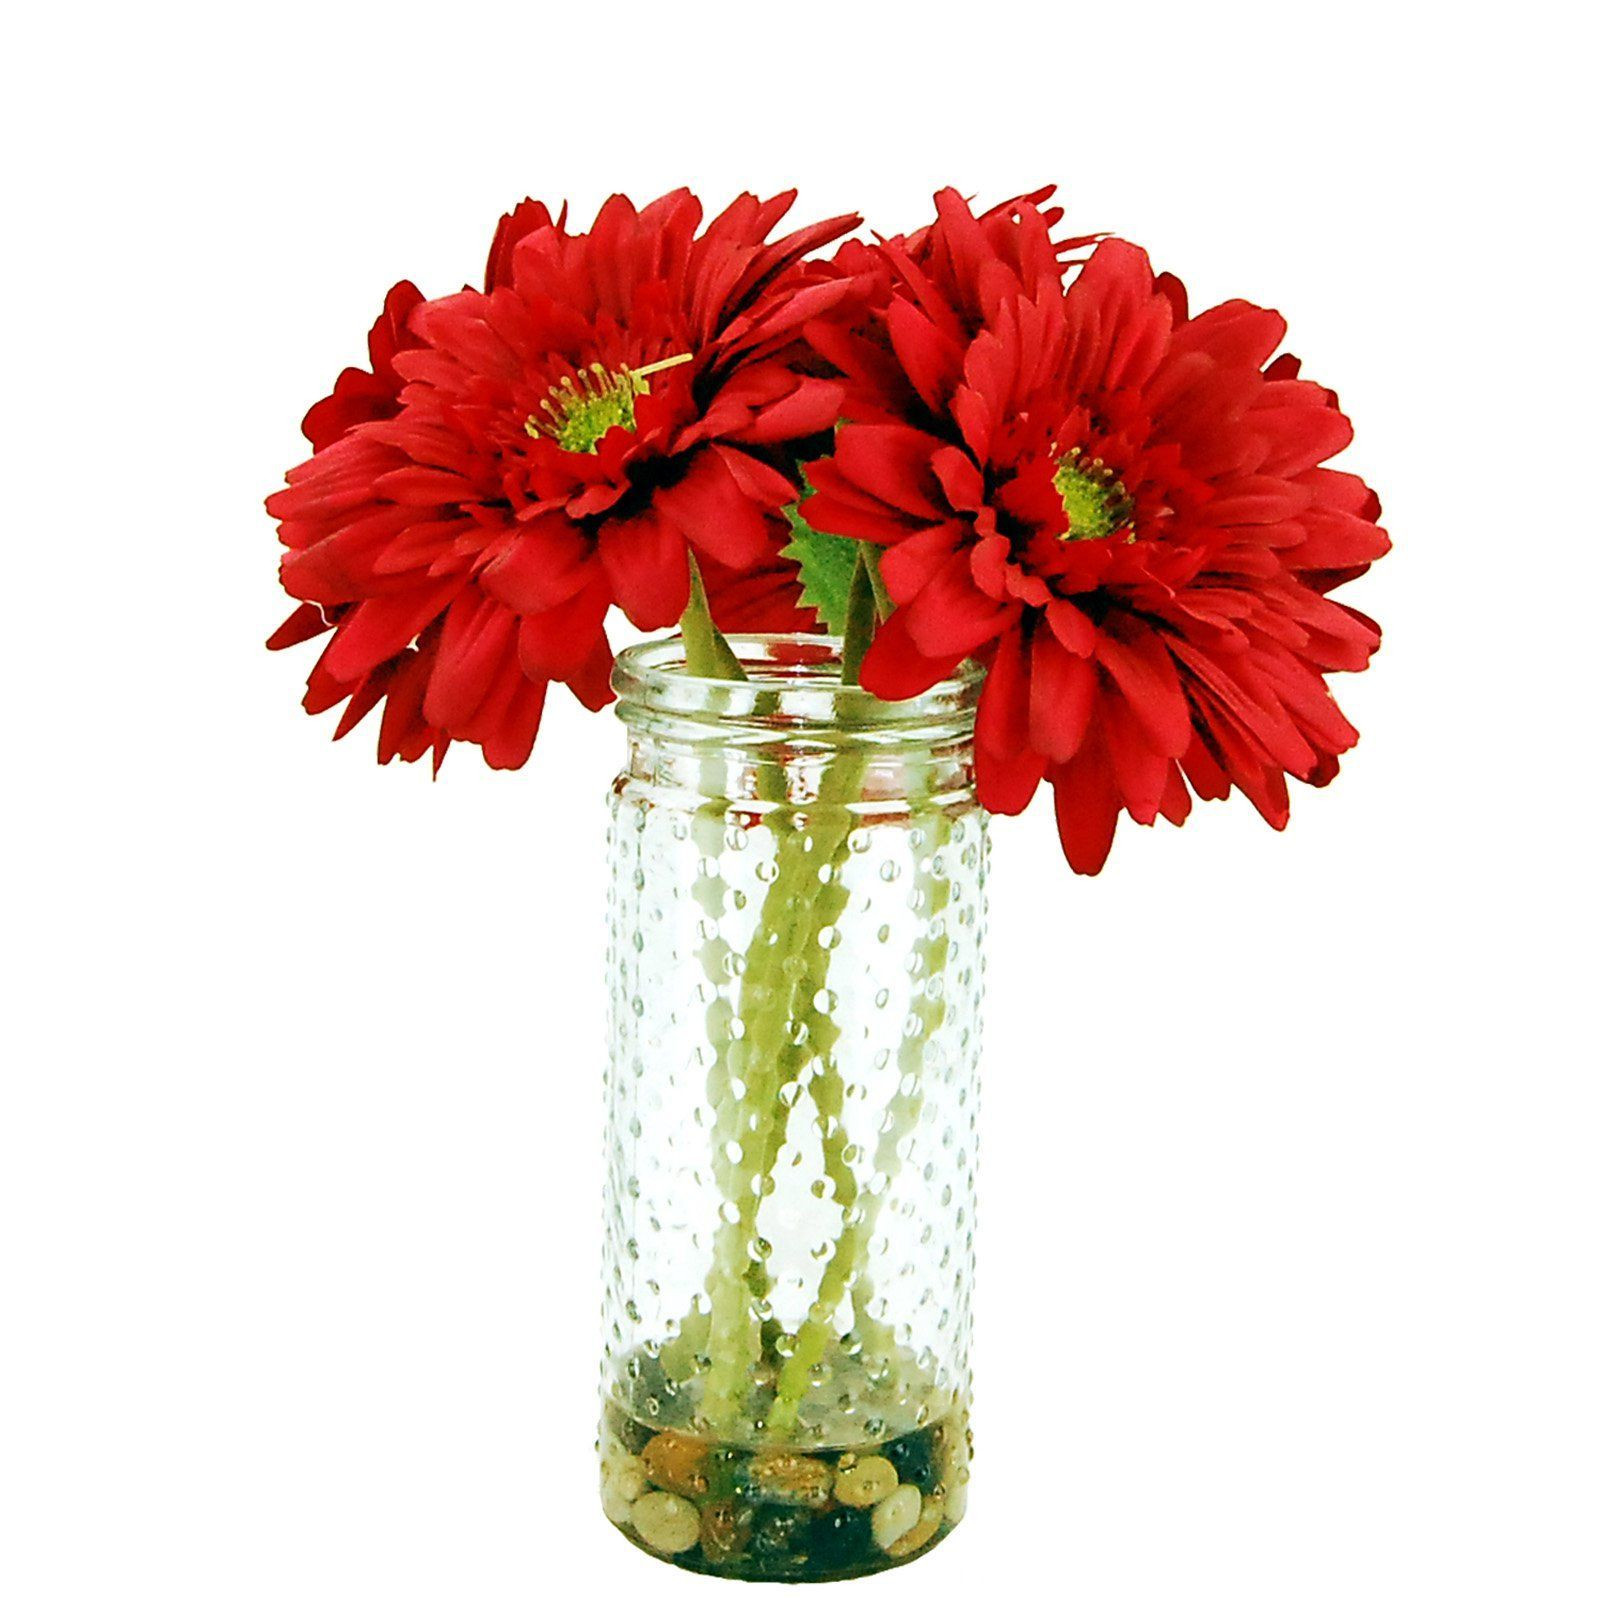 LCG Florals Gerber Daisies Silk Flowers with Glass Vase 15W73